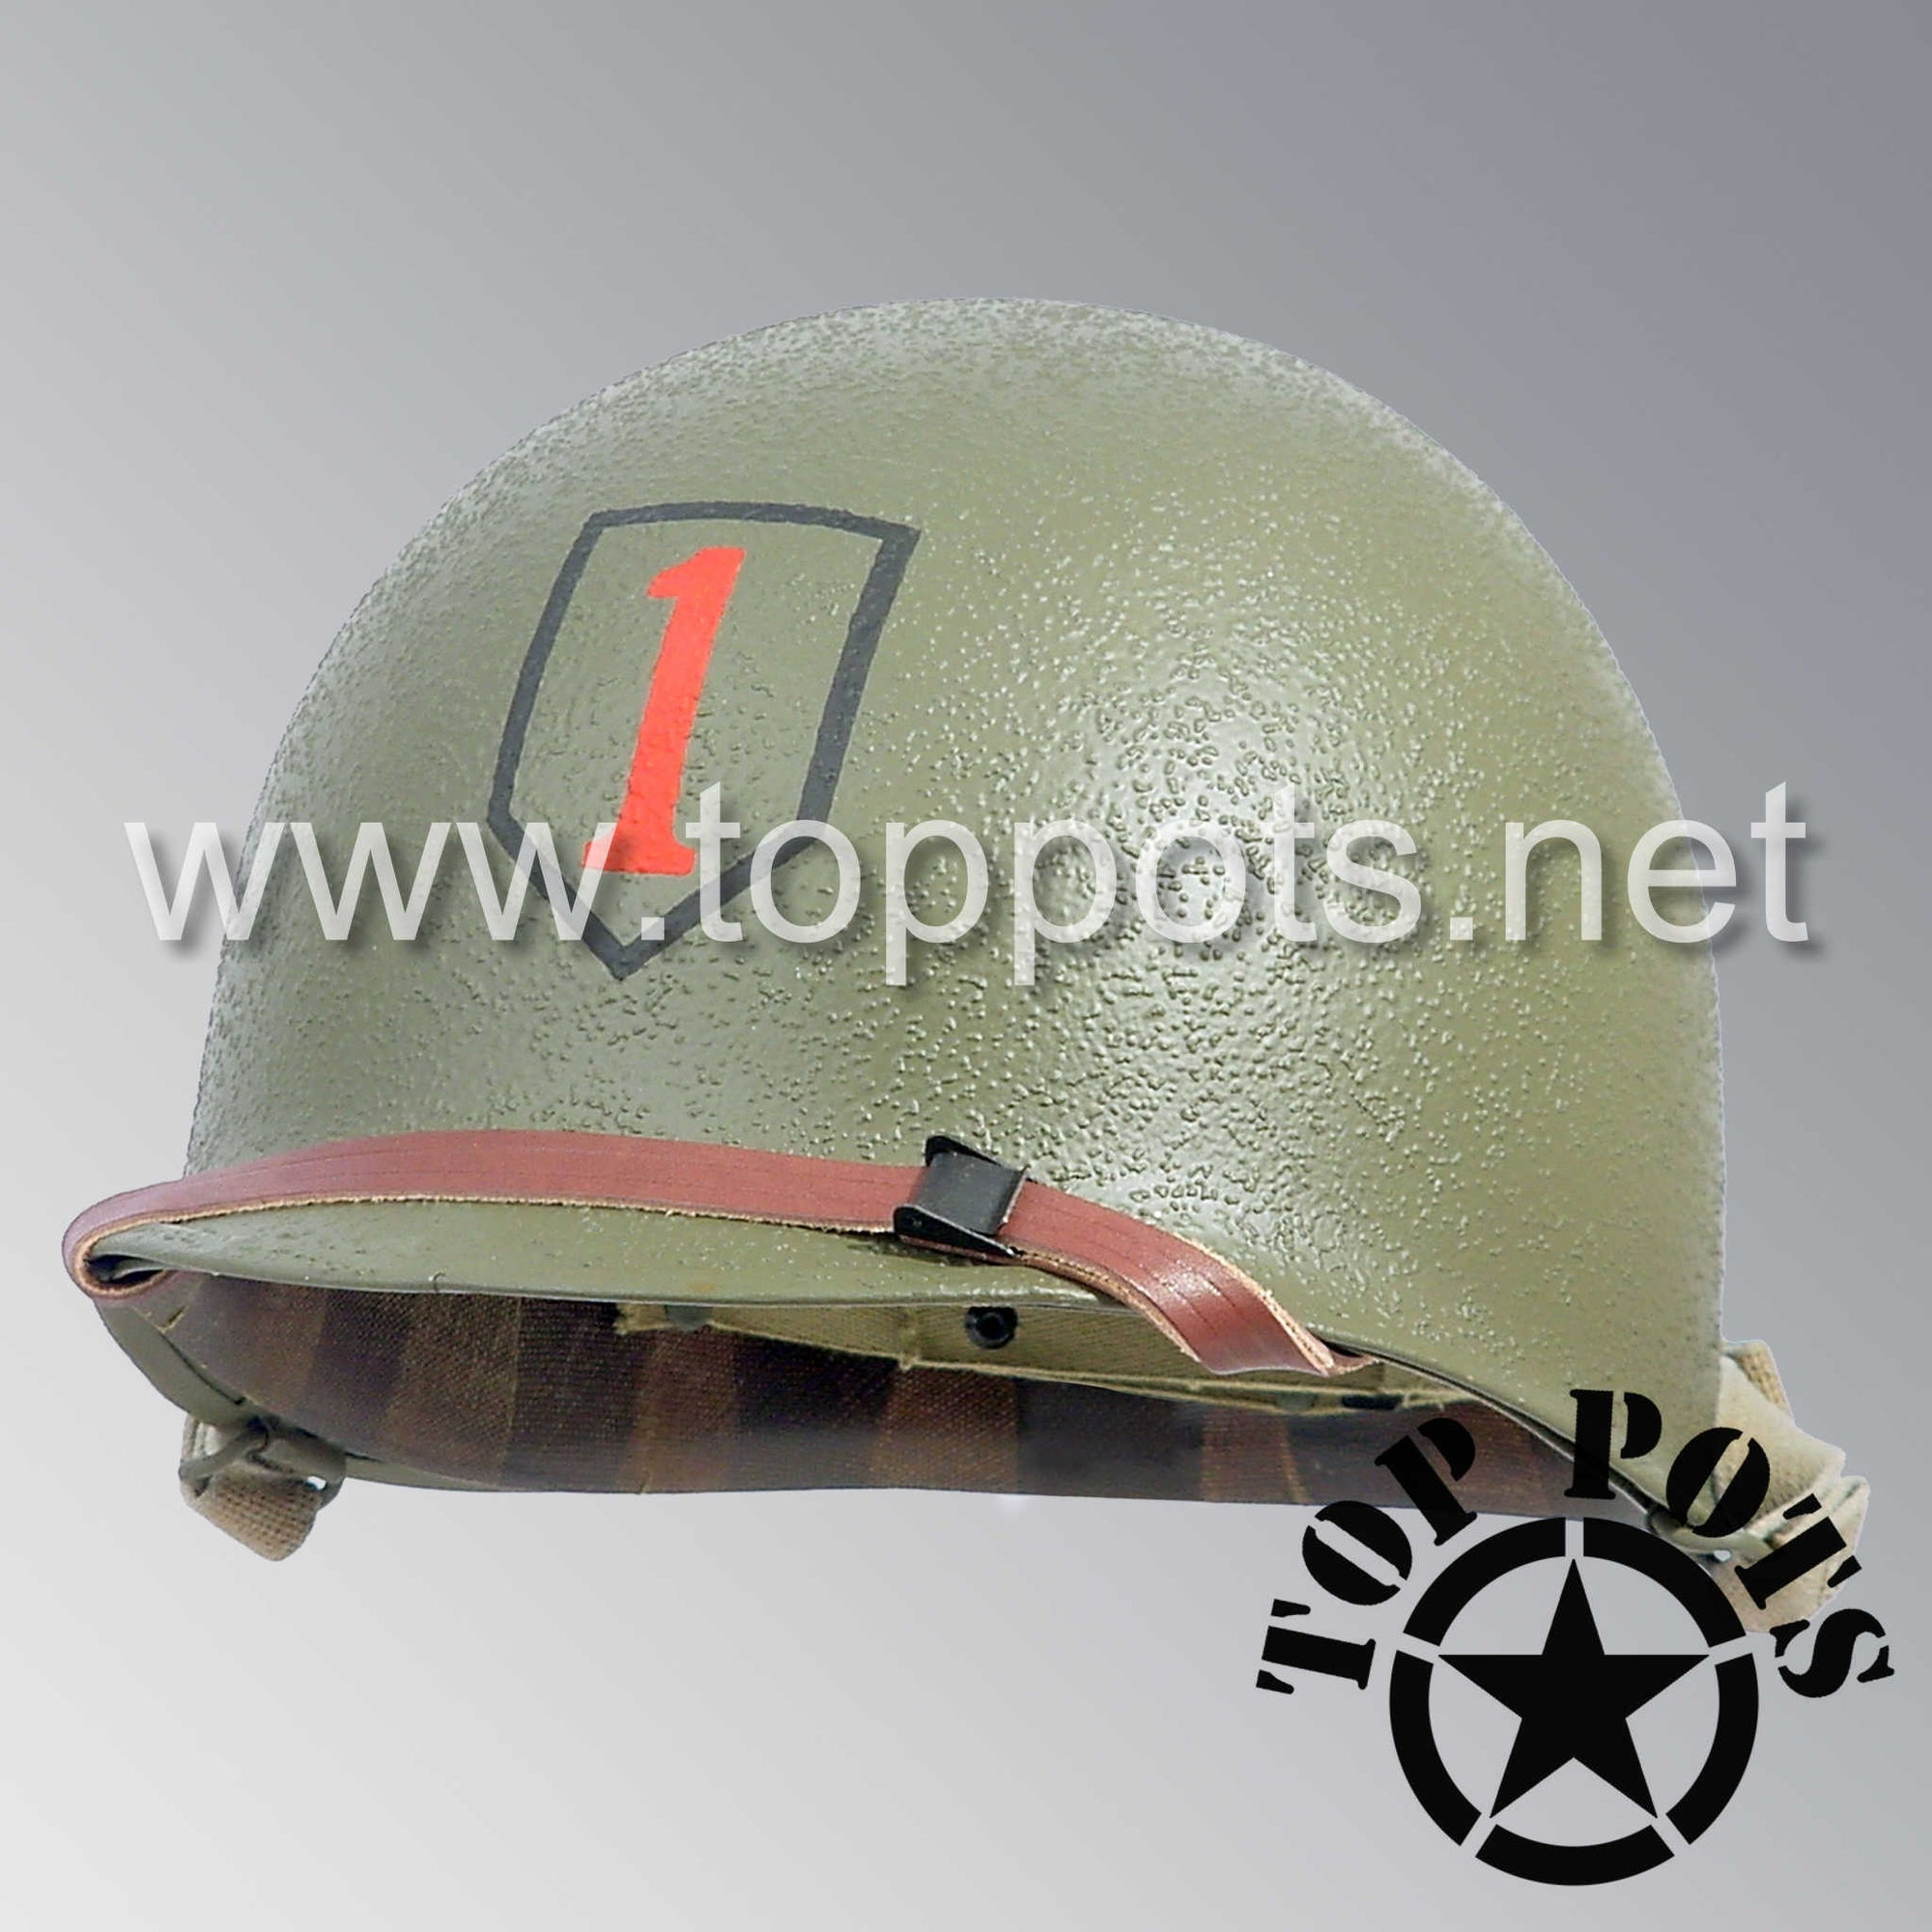 Image 1 of WWII US Army Restored Original M1 Infantry Helmet Swivel Bale Shell and Liner with 1st Infantry Division Emblem